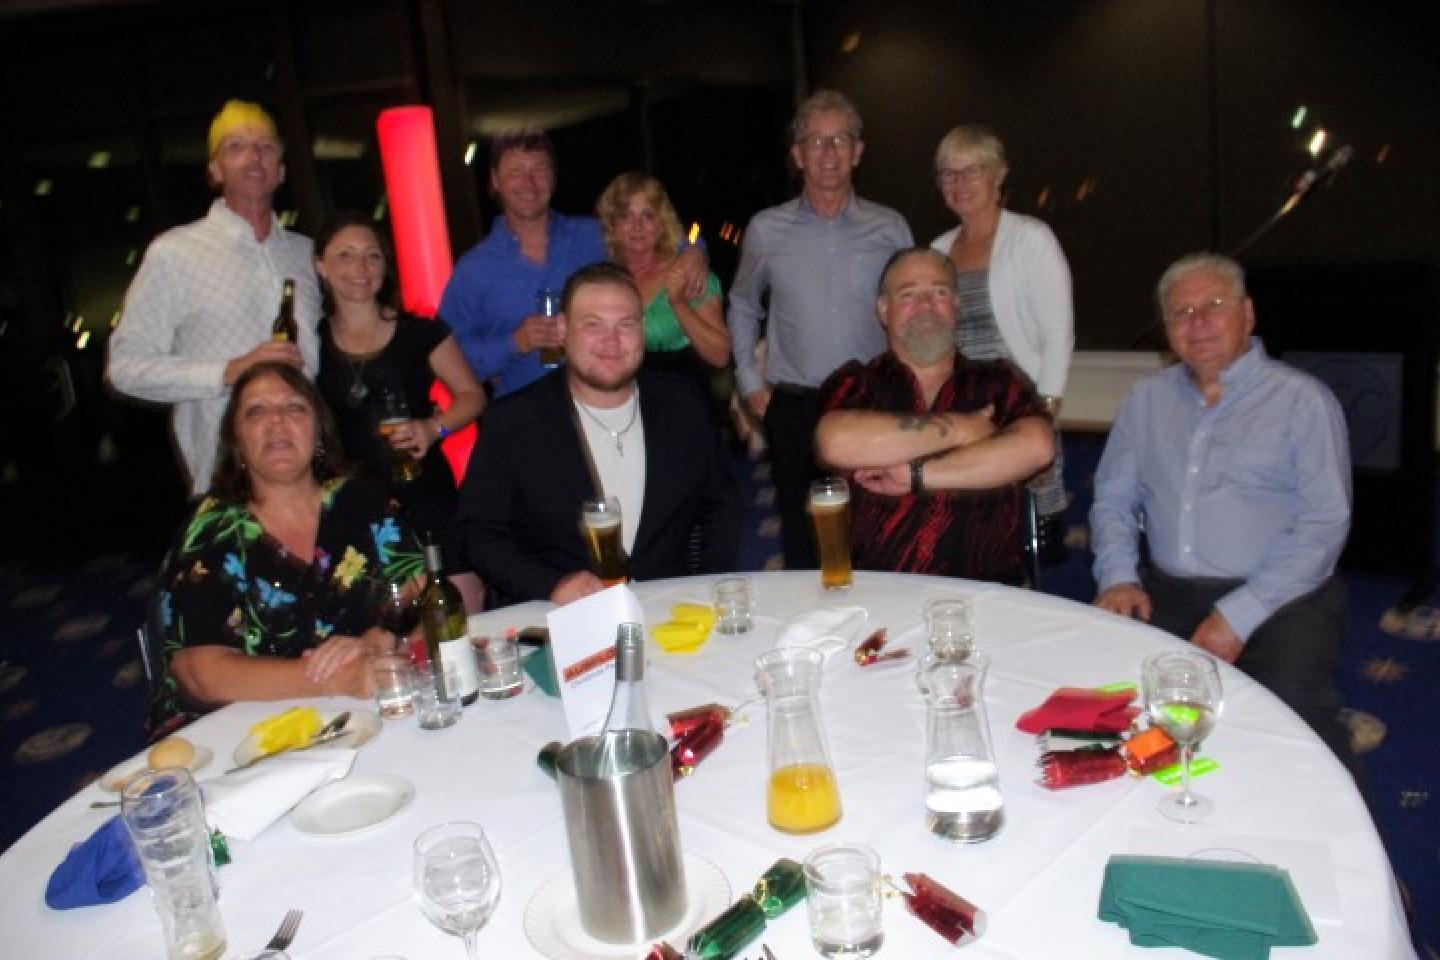 Maggi Di Re (left), Erich Nelson and Keisha Roberts (standing), Peter Hornsby, Mark and Theresa Bolton (standing), Mark Oliver and Carol Muir (standing), John Di Re and John Ryan AM.